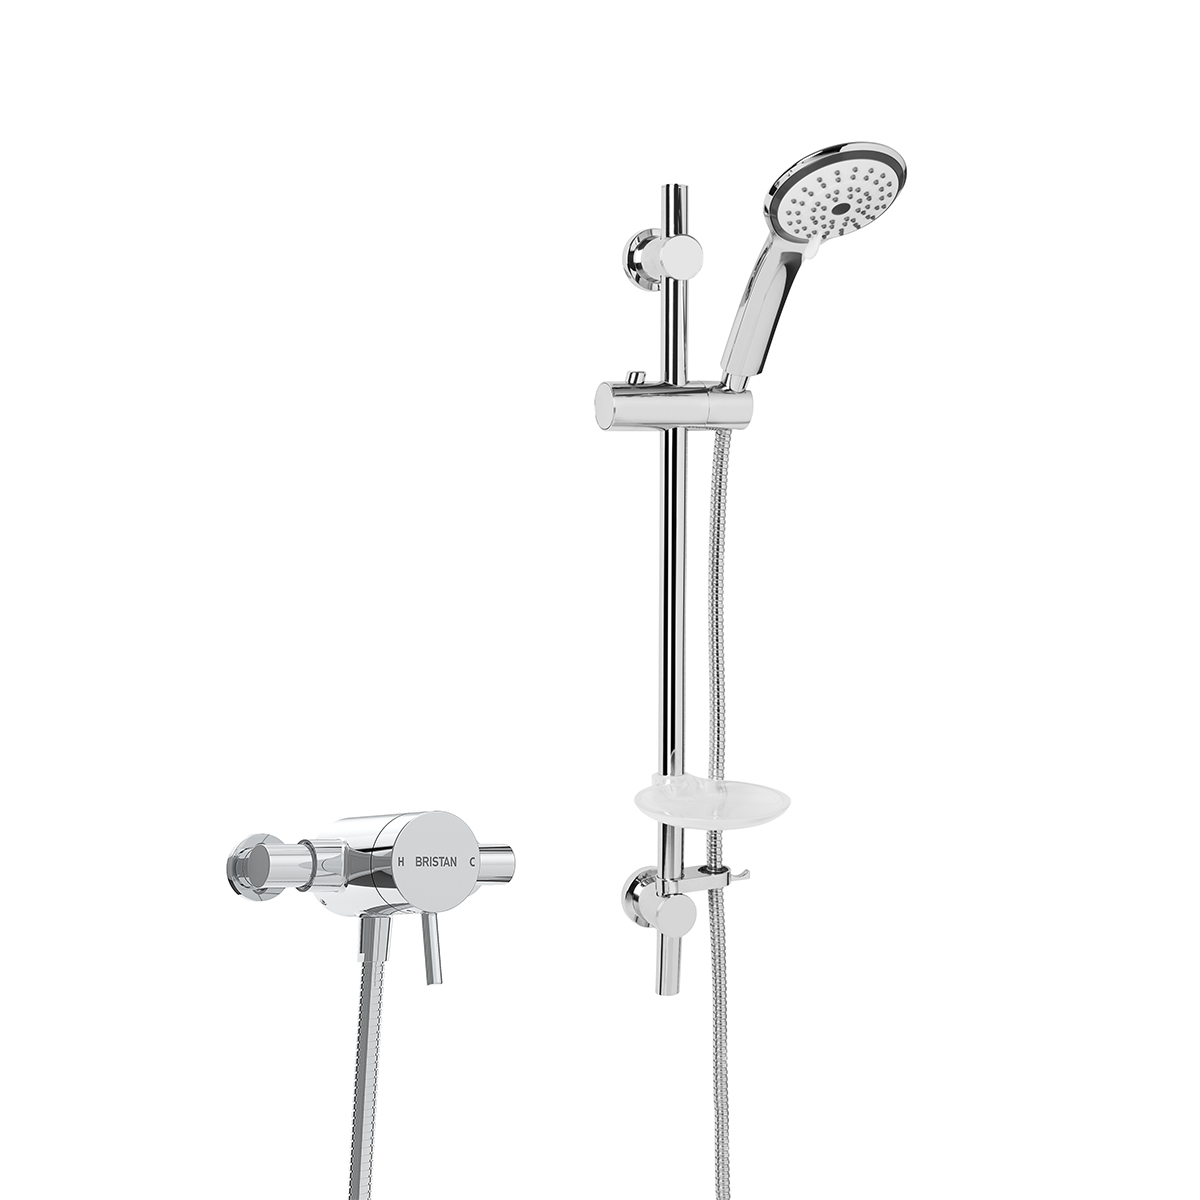 Exposed Single Control Shower with Adjustable Riser